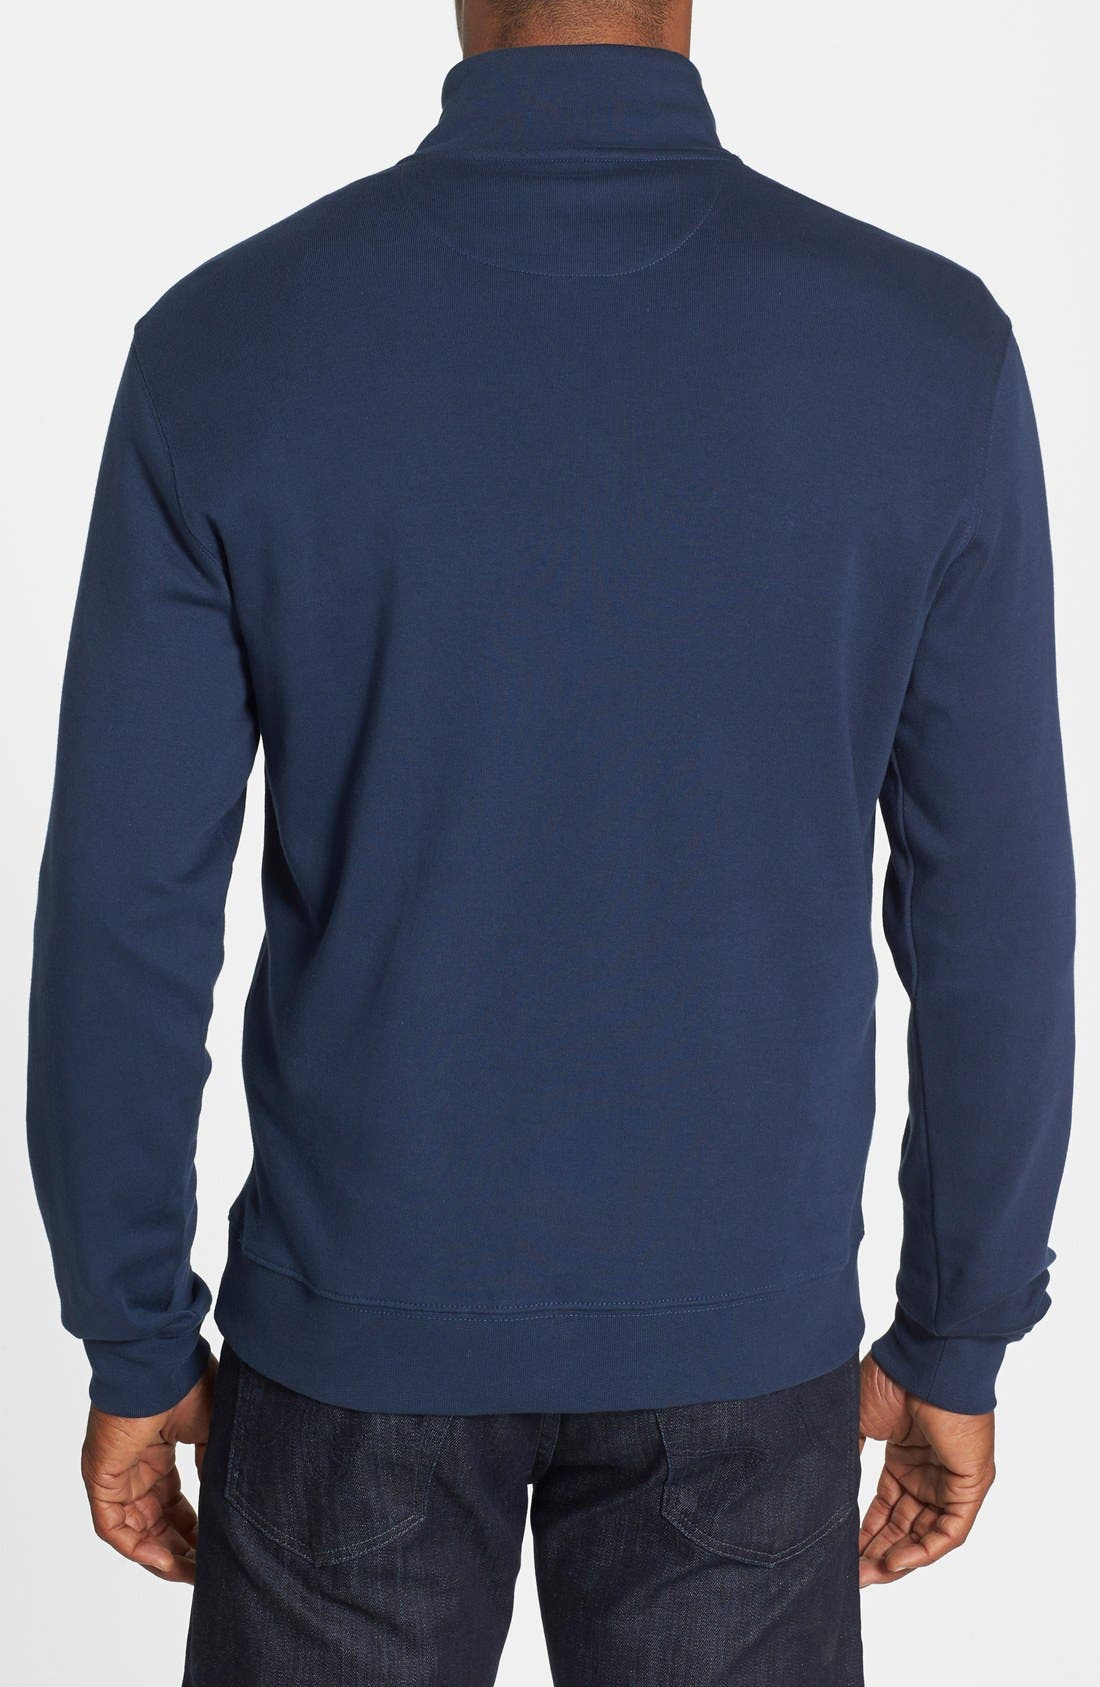 Alternate Image 2  - Vineyard Vines Quarter Zip Cotton Jersey Sweatshirt